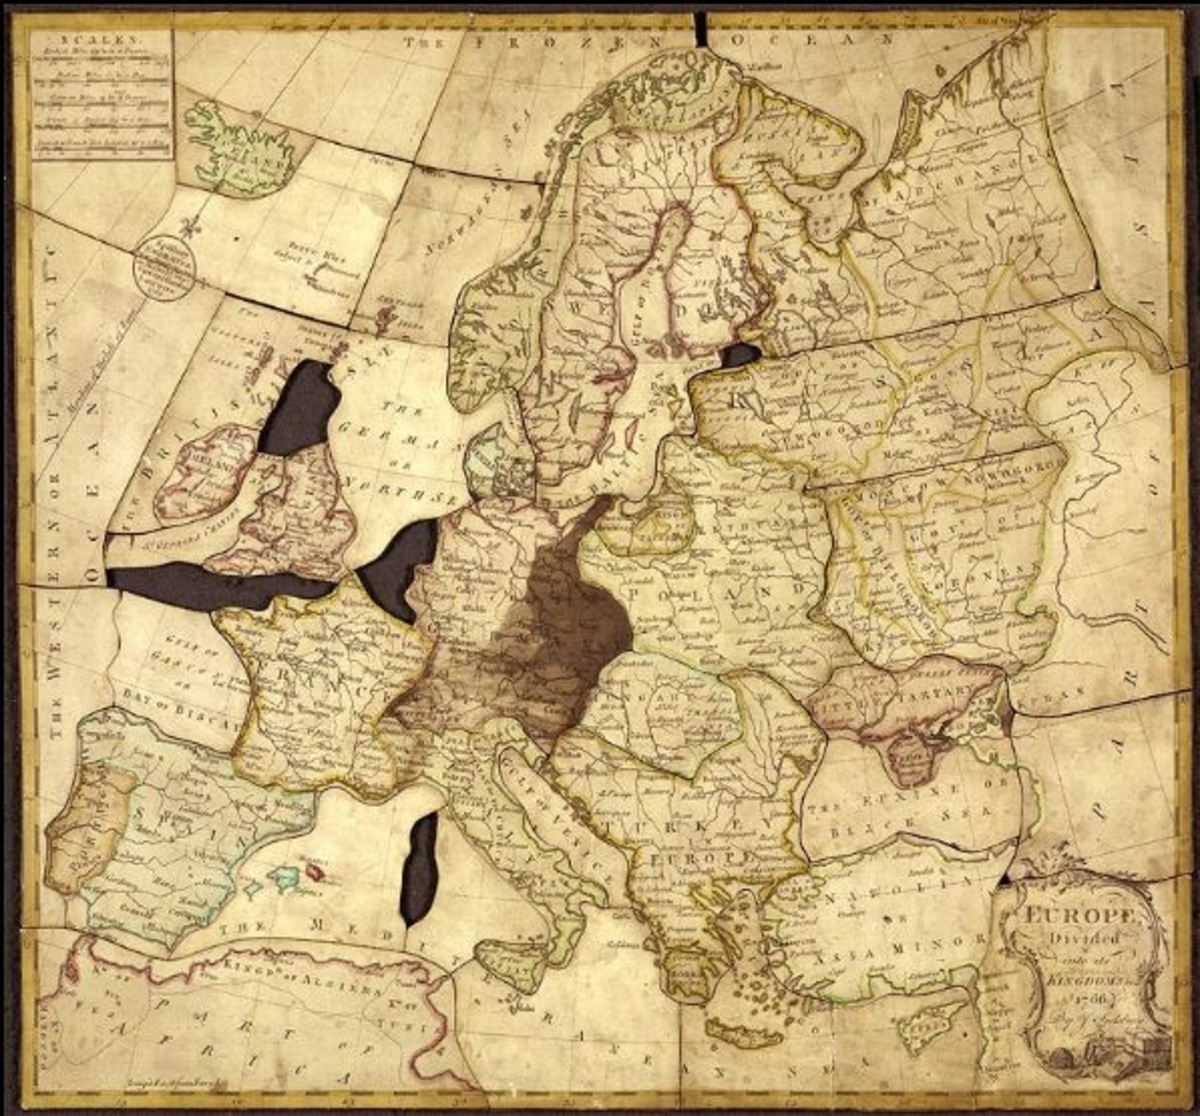 The first jigsaw puzzle was a map glued on wood and cut out by John Spilsbury in 1767